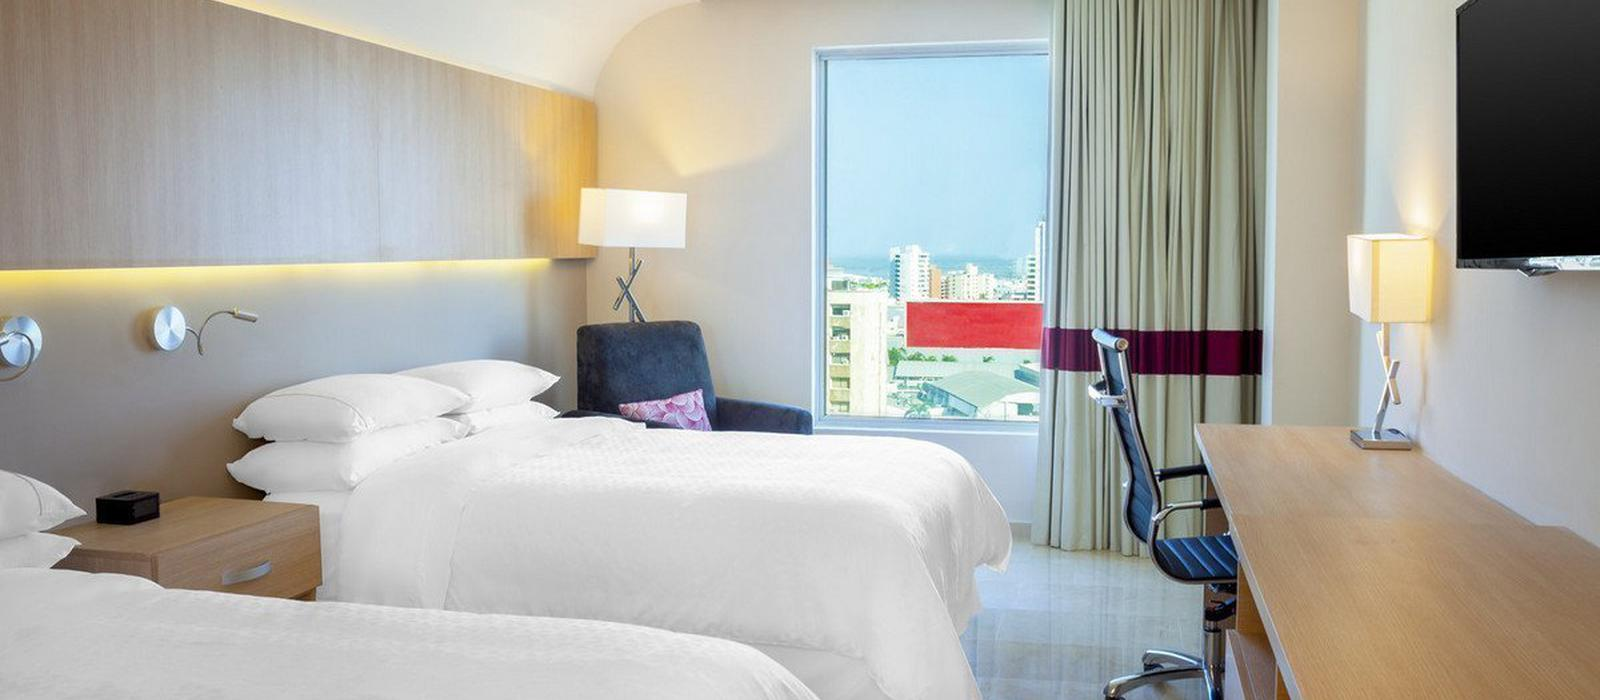 Hotel Four Points By Sheraton Barranquilla Barranquilla